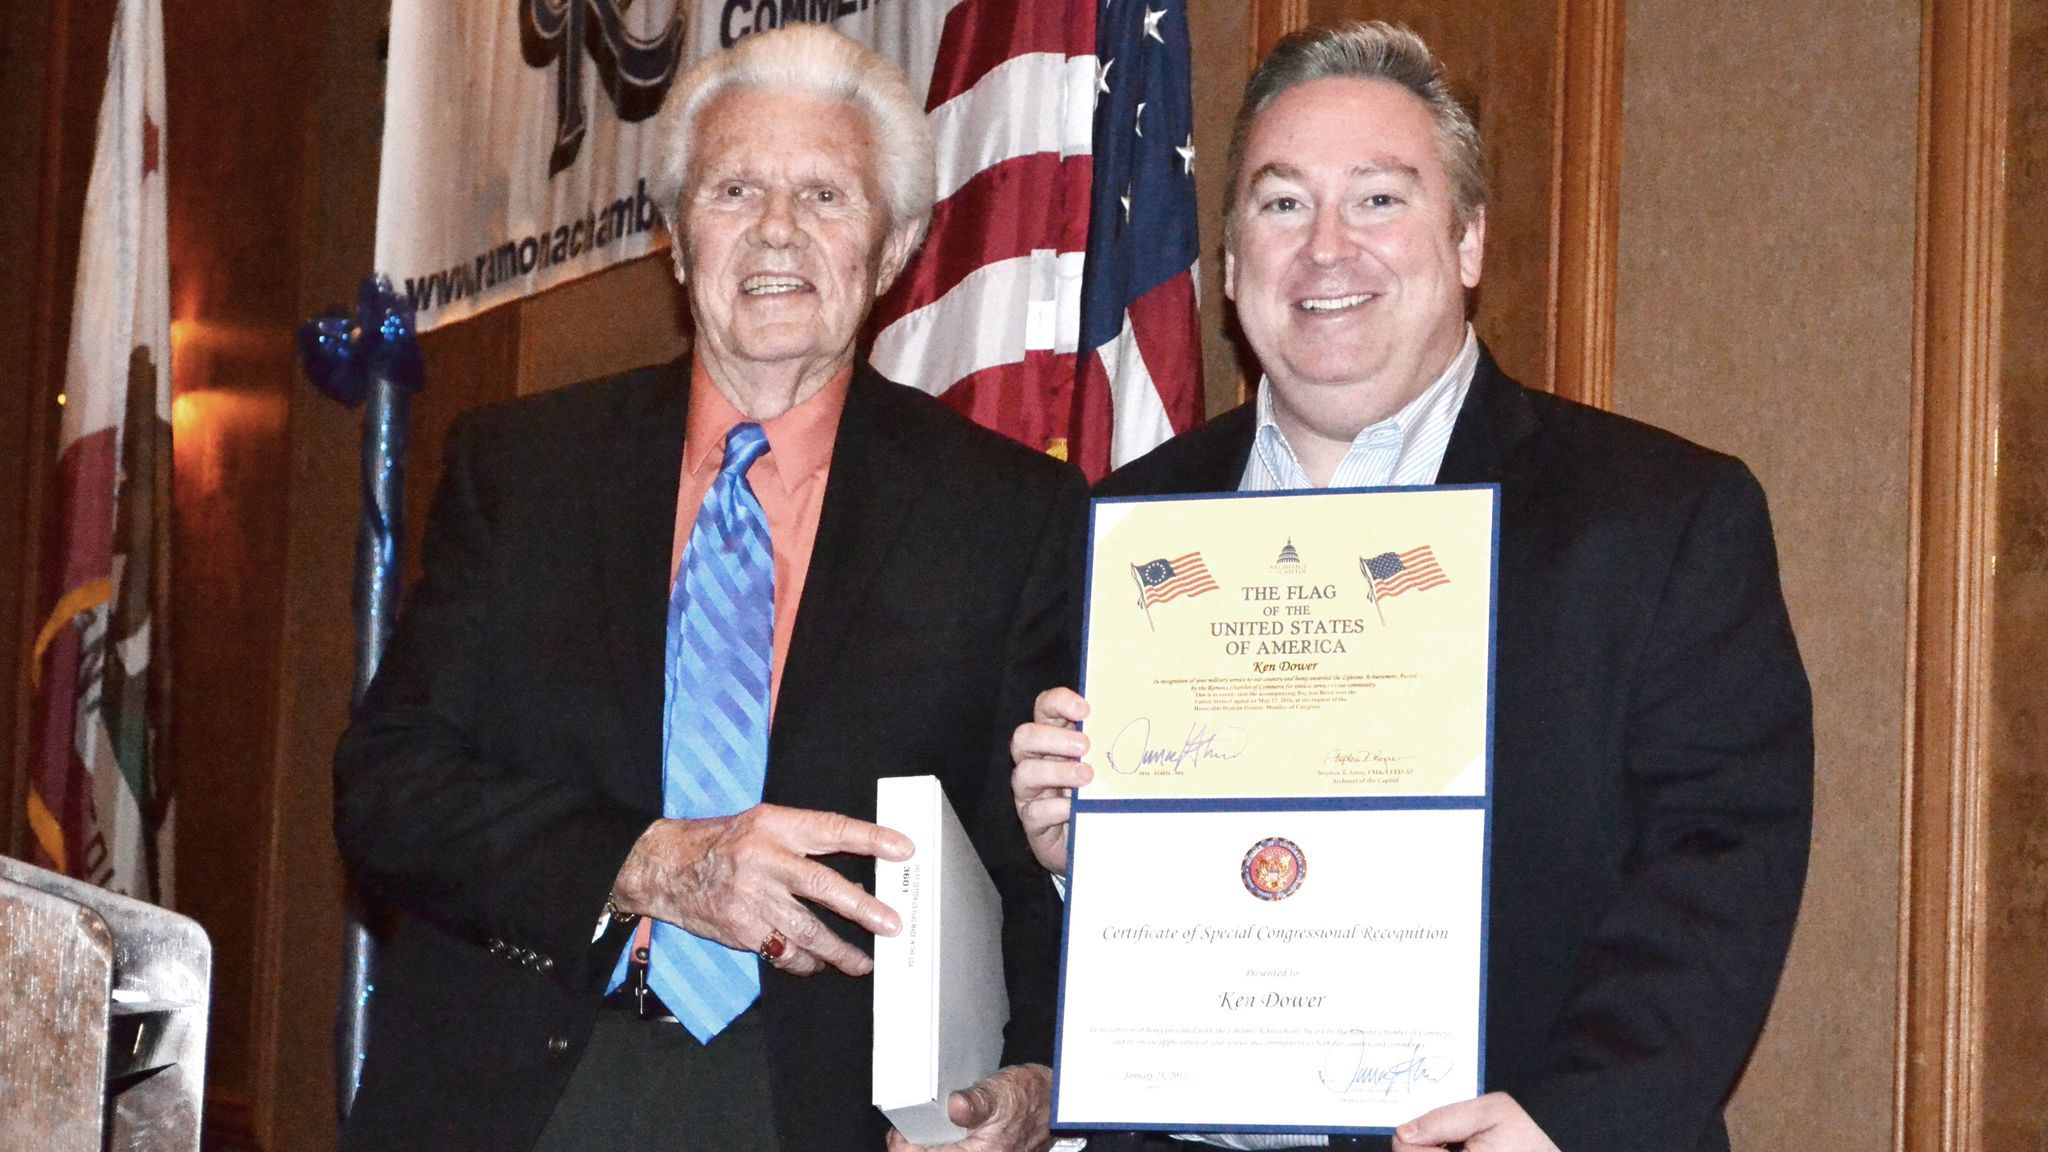 Ken Dower, Lifetime Achievement award recipient, accepts an American flag that flew over the U.S. Capitol from Michael Harrison, chief of staff for Congressman Duncan Hunter. Dower, a Navy and Marine Corps veteran, retired with 35 years in military intelligence.